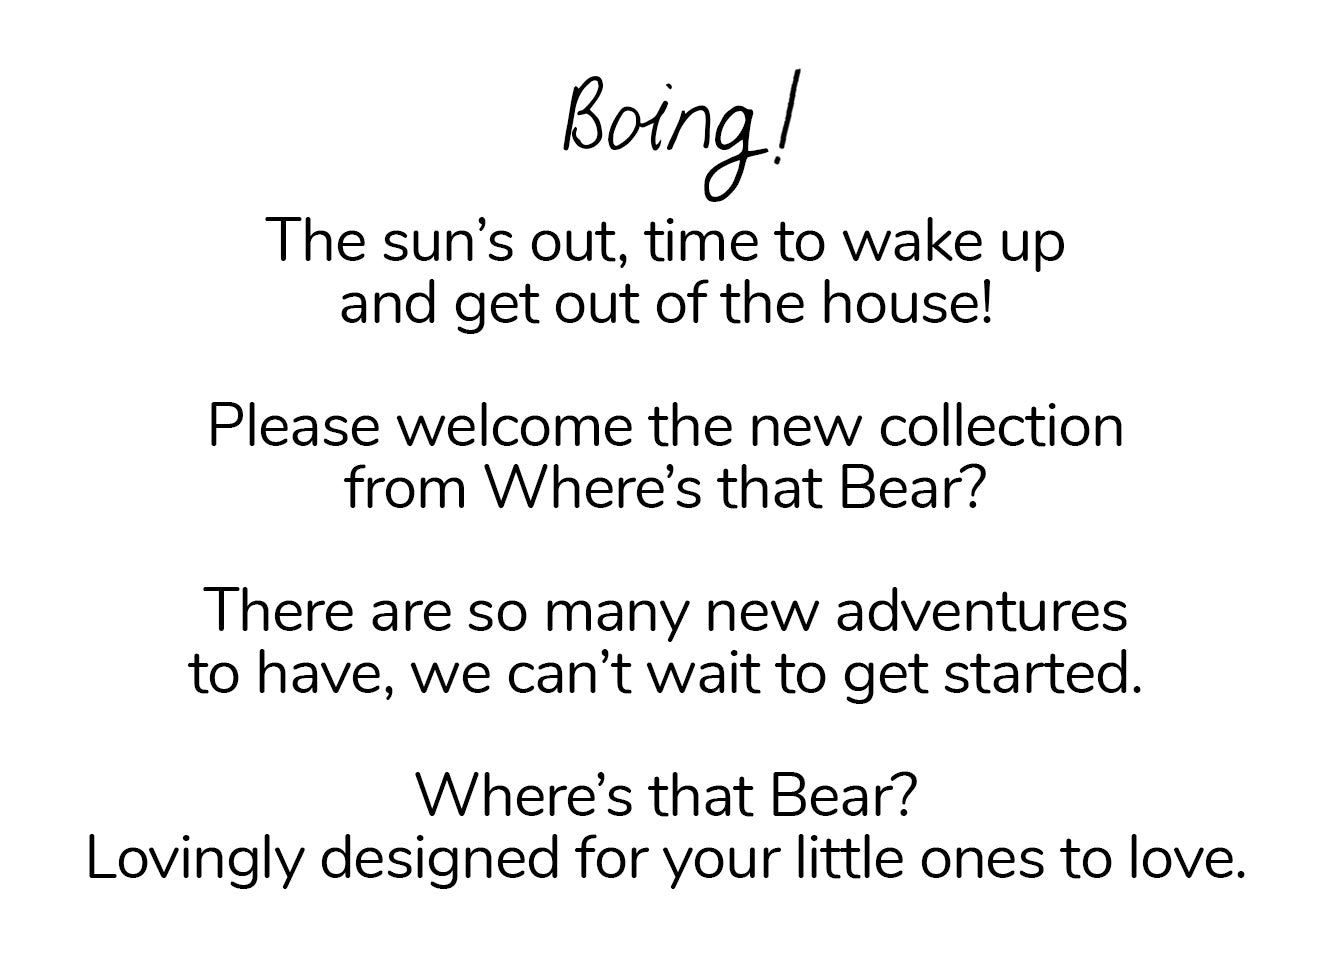 Boing! The sun's out, time to wake up and get out of the house! Please welcome the new collection from Where's that Bear?